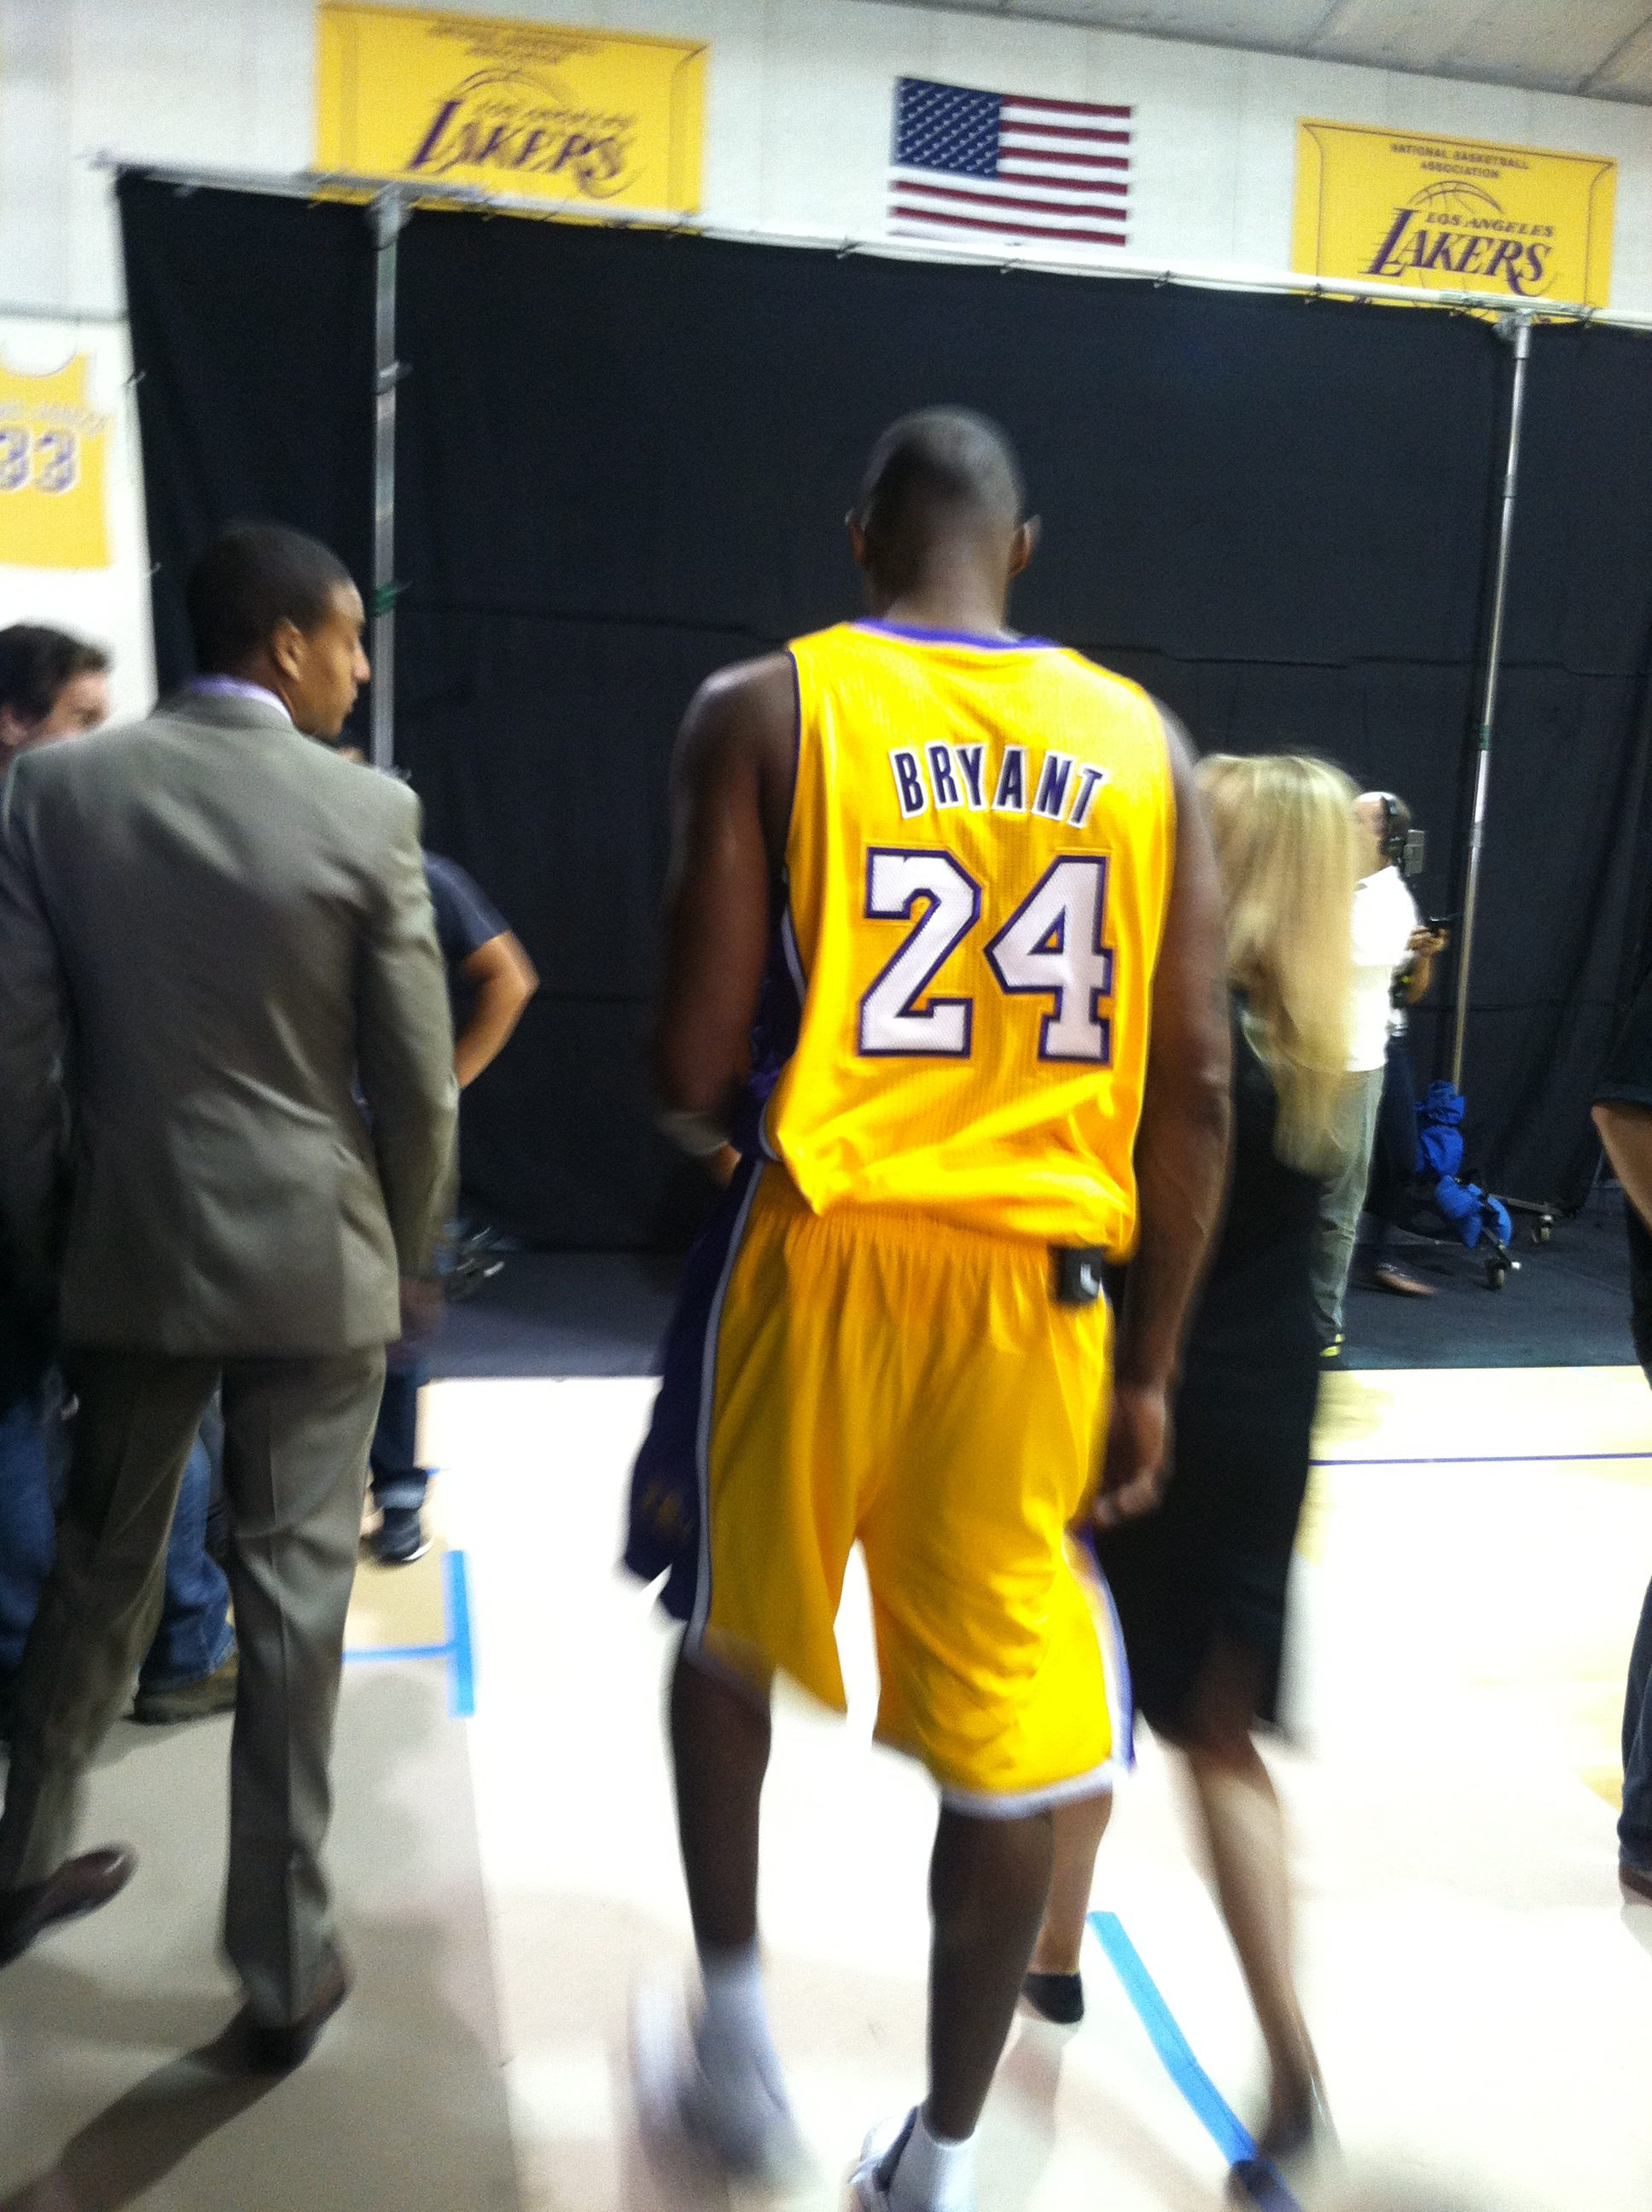 Image courtesy of Terra Kohut, who took this picture at NBA Media Day a couple of seasons ago.